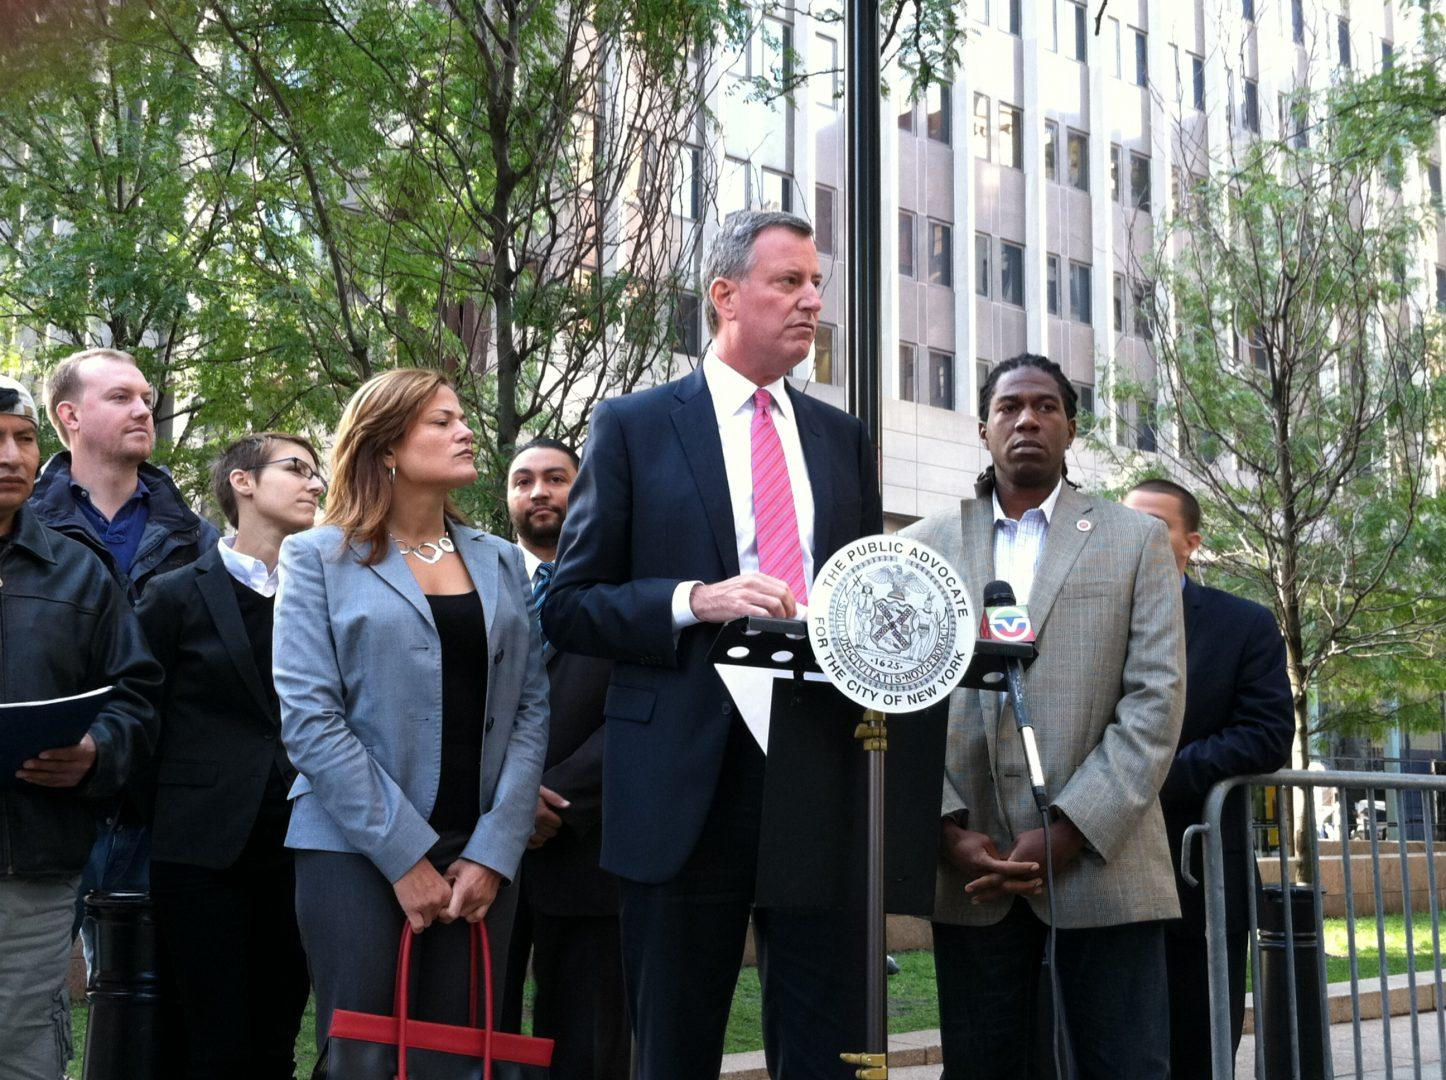 Candidate Bill de Blasio with Council Member Melissa Mark-Viverito and Council Member Jumaane Williams (photo courtesy of Bill de Blasio via Flickr)